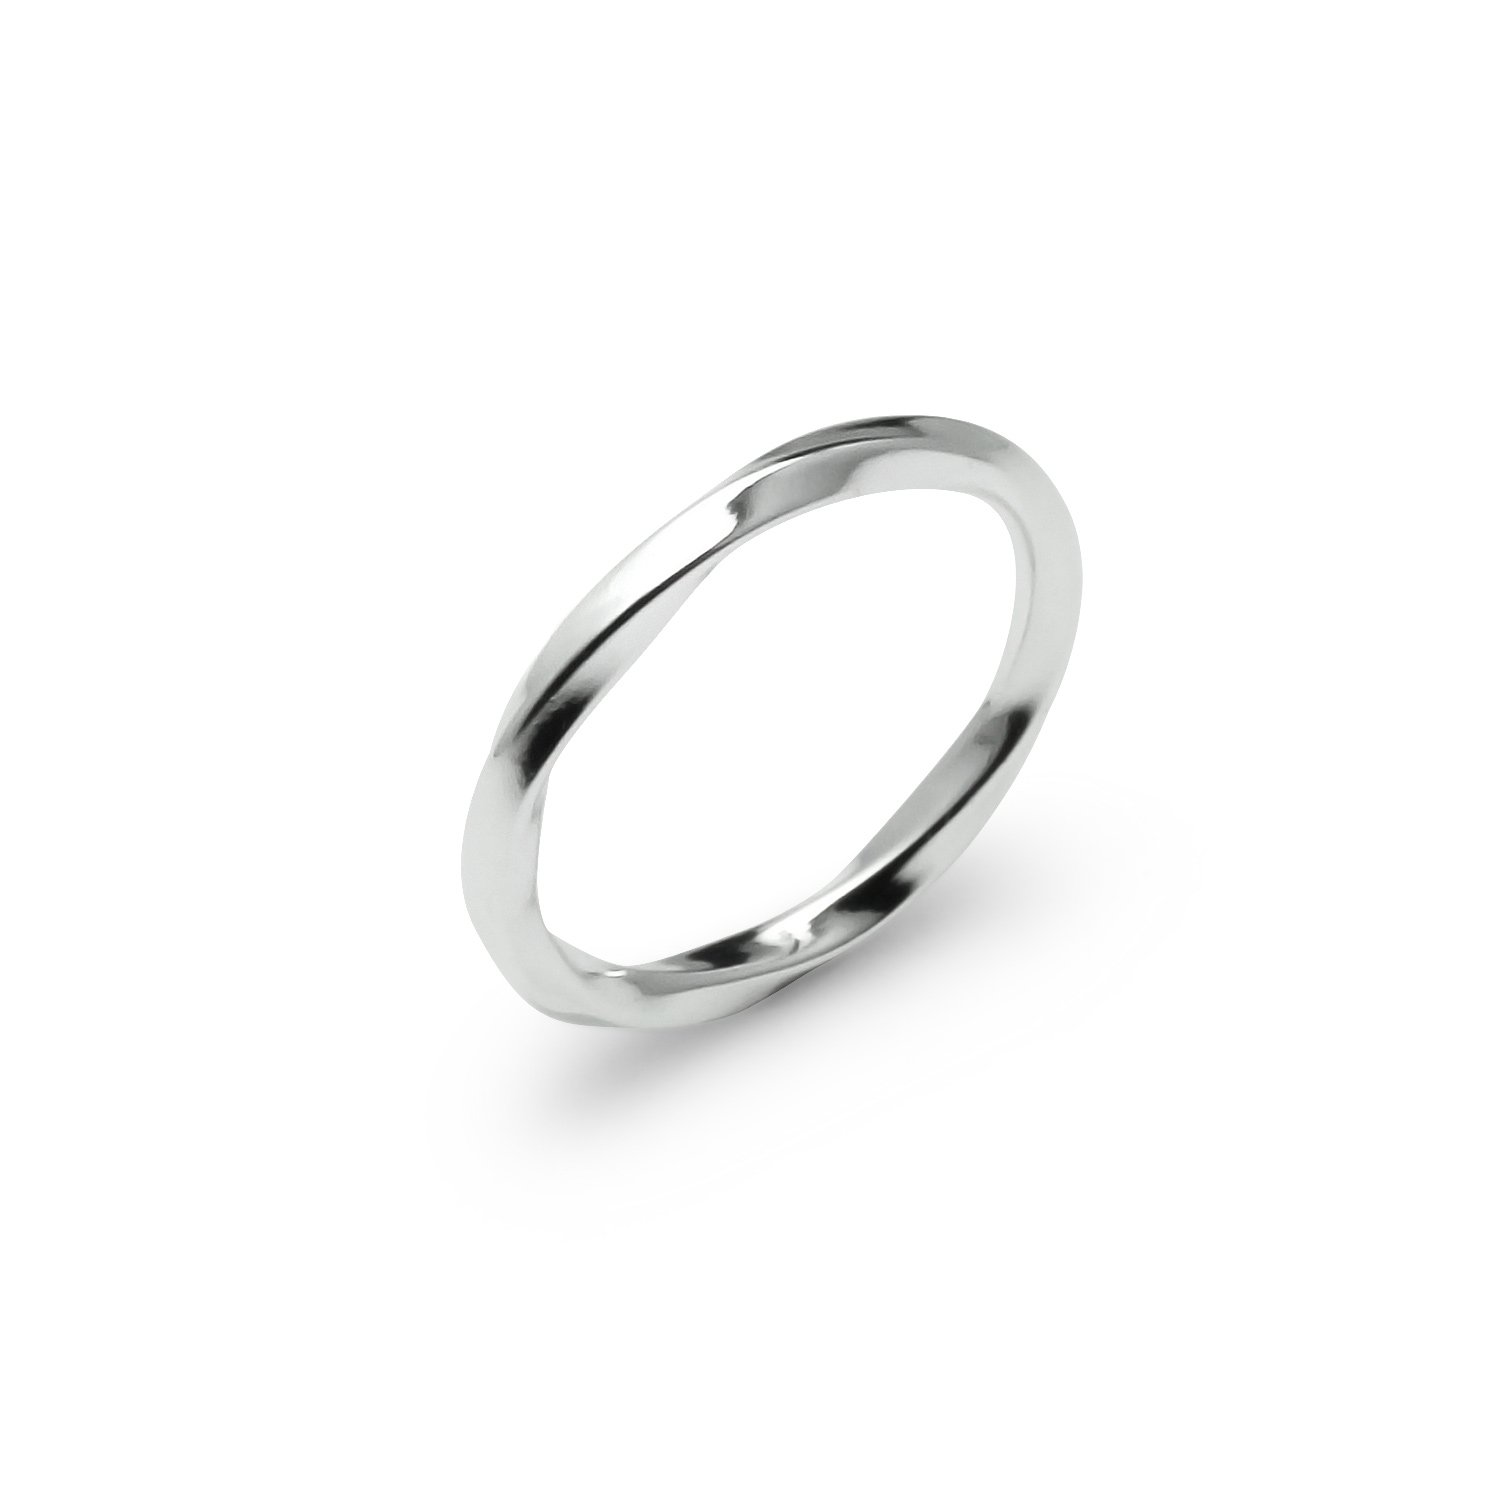 River Island Jewelry - 925 Sterling Silver Light Weight Twisted Wedding Band Ring